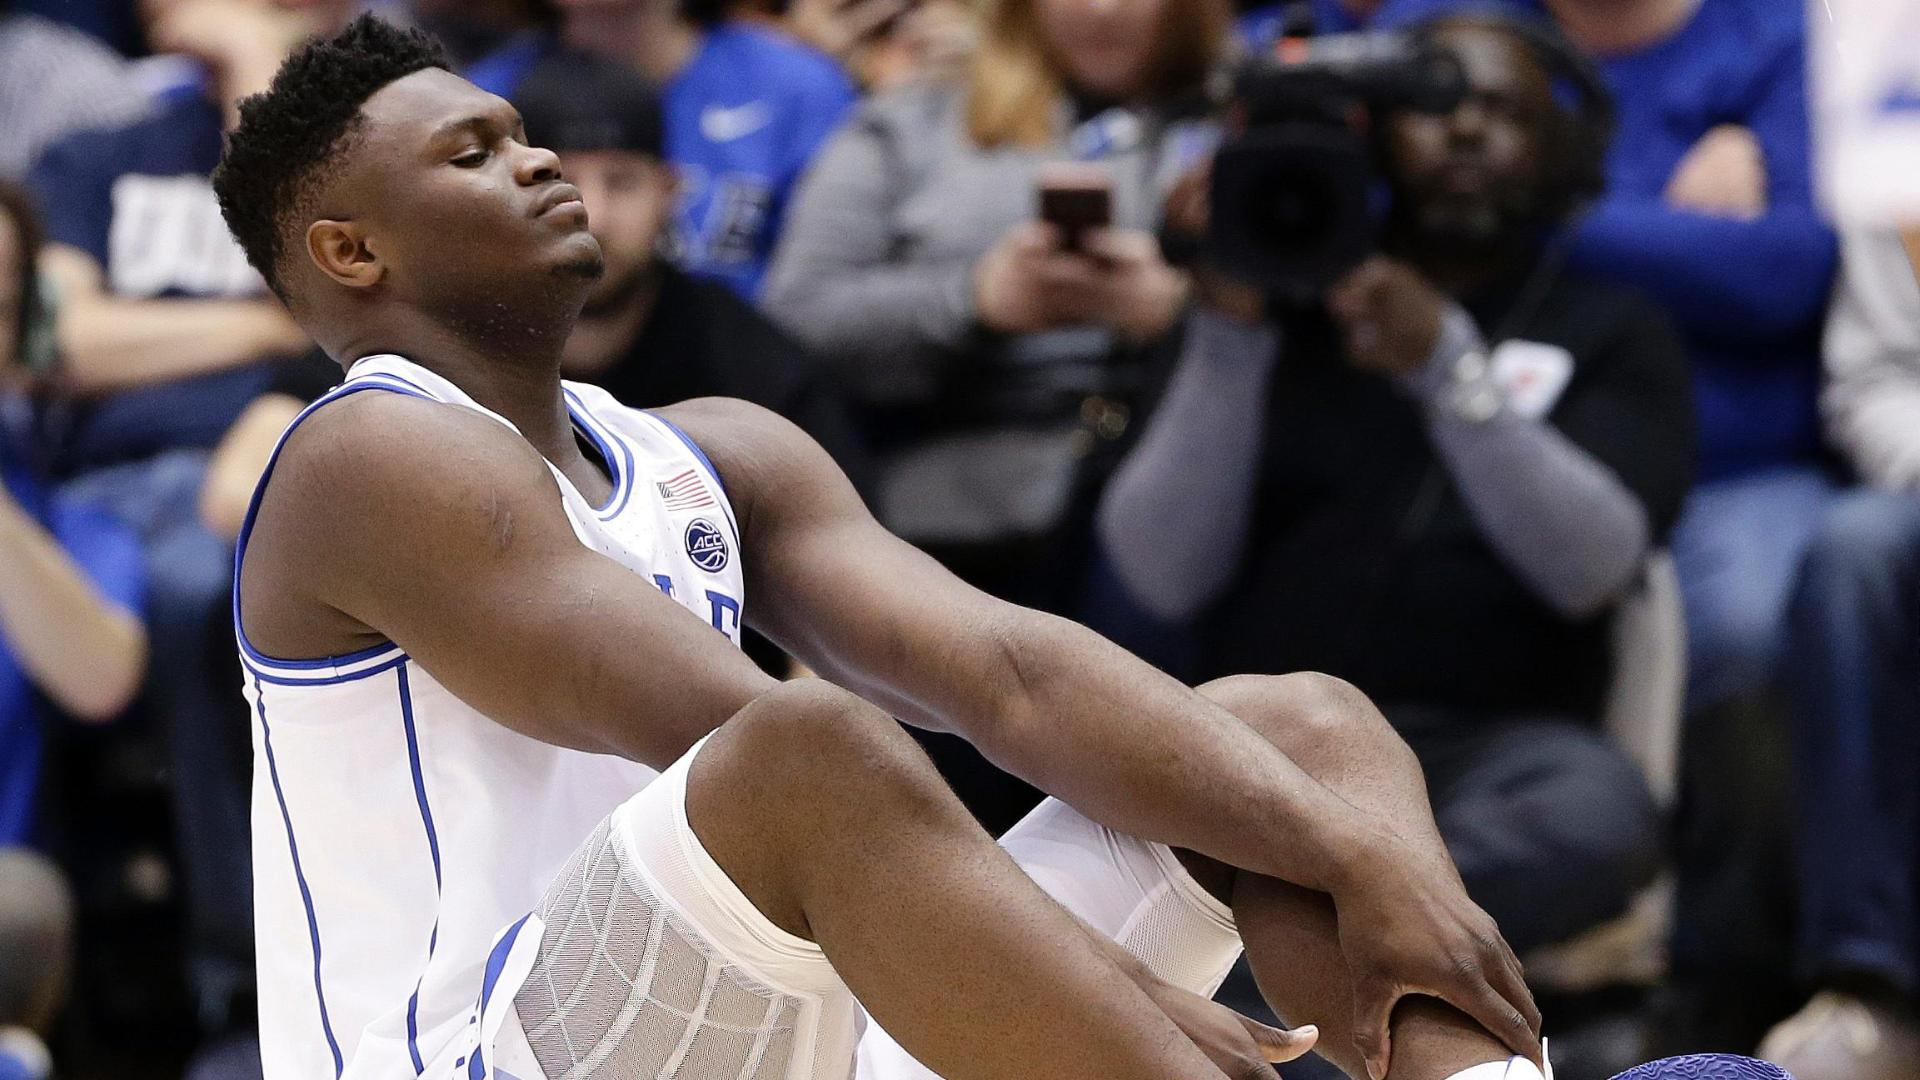 UNC builds halftime lead after Zion exits